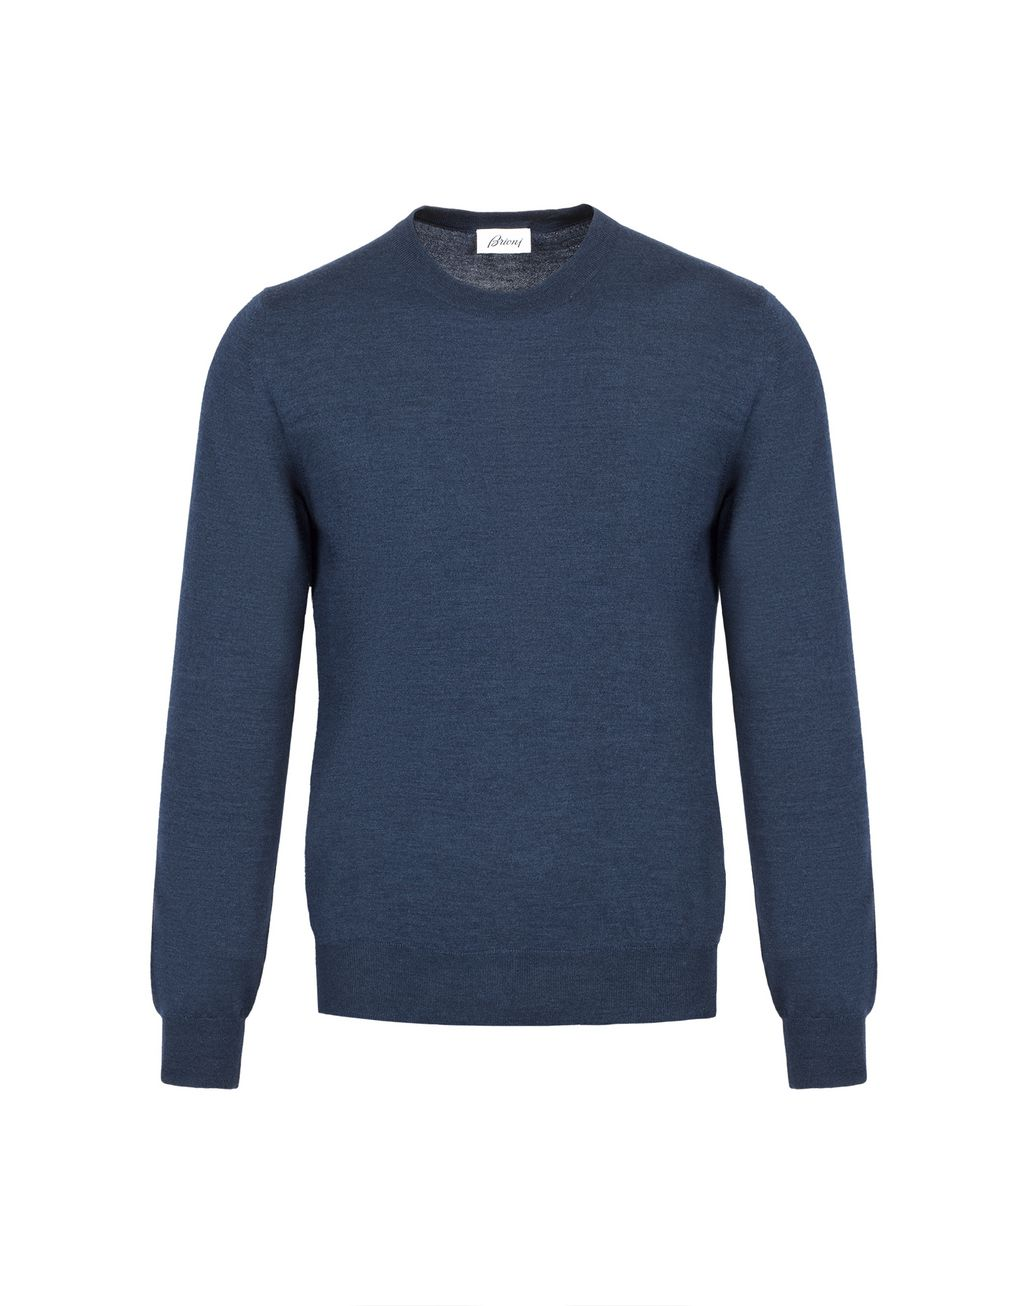 BRIONI Bluette Crew-Neck Sweater Knitwear [*** pickupInStoreShippingNotGuaranteed_info ***] f